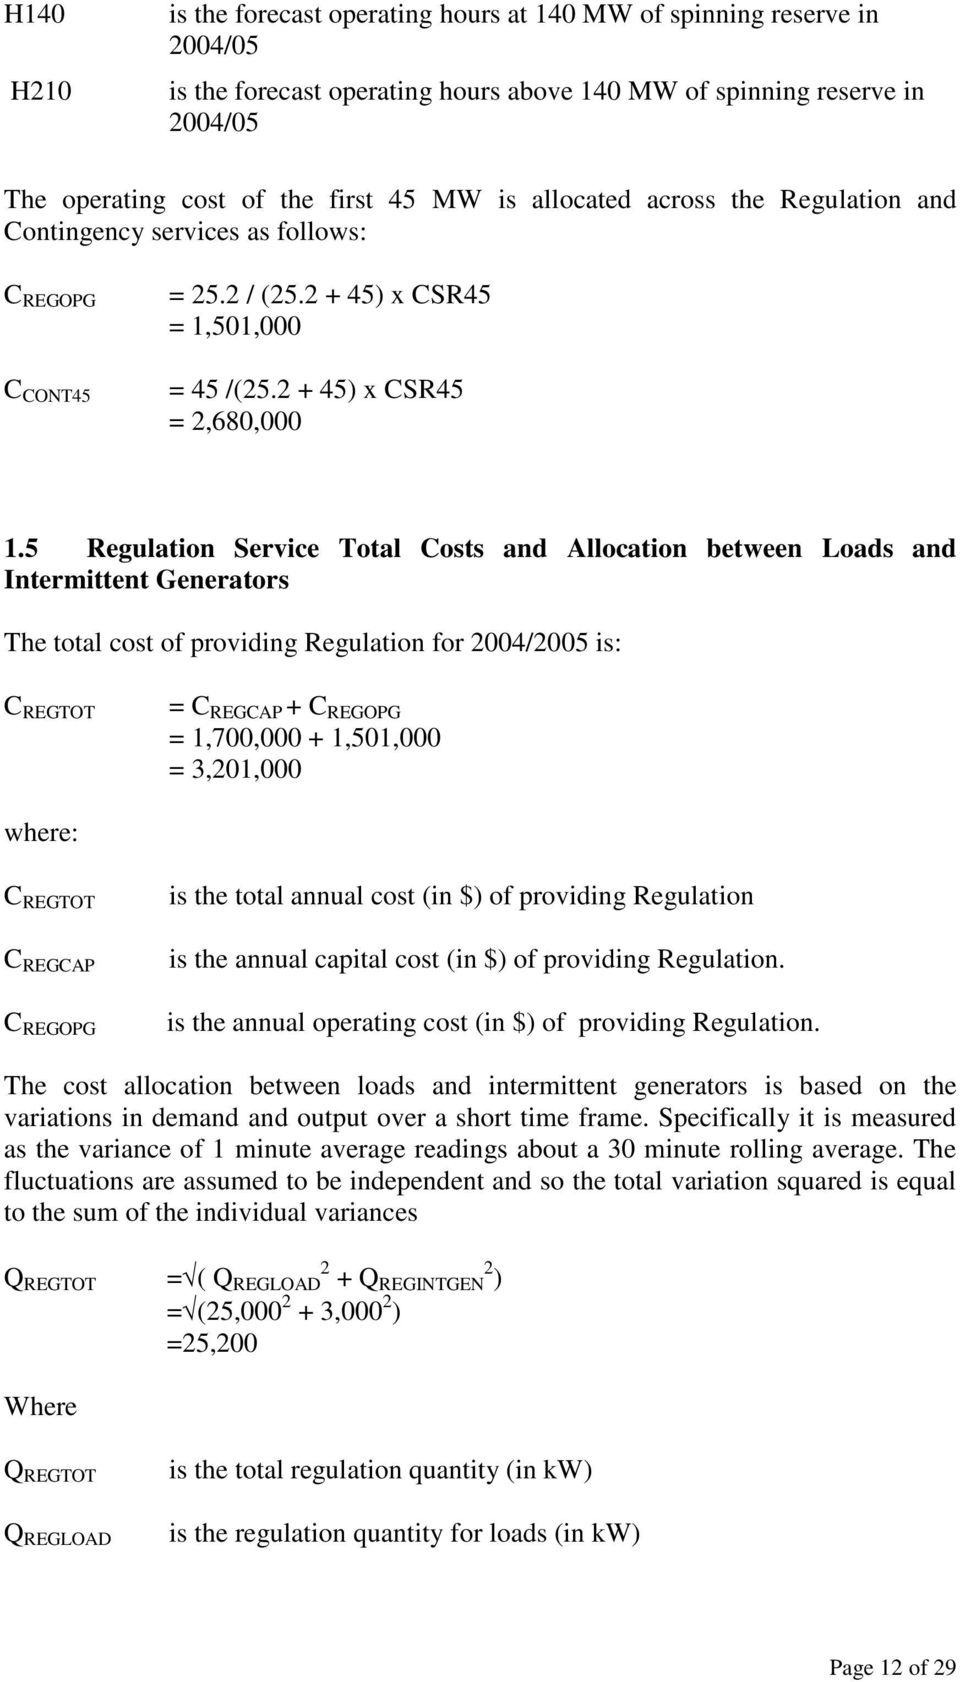 5 Regulation Service Total Costs and Allocation between Loads and Intermittent Generators The total cost of providing Regulation for 2004/2005 is: C REGTOT = C REGCAP + C REGOPG = 1,700,000 +